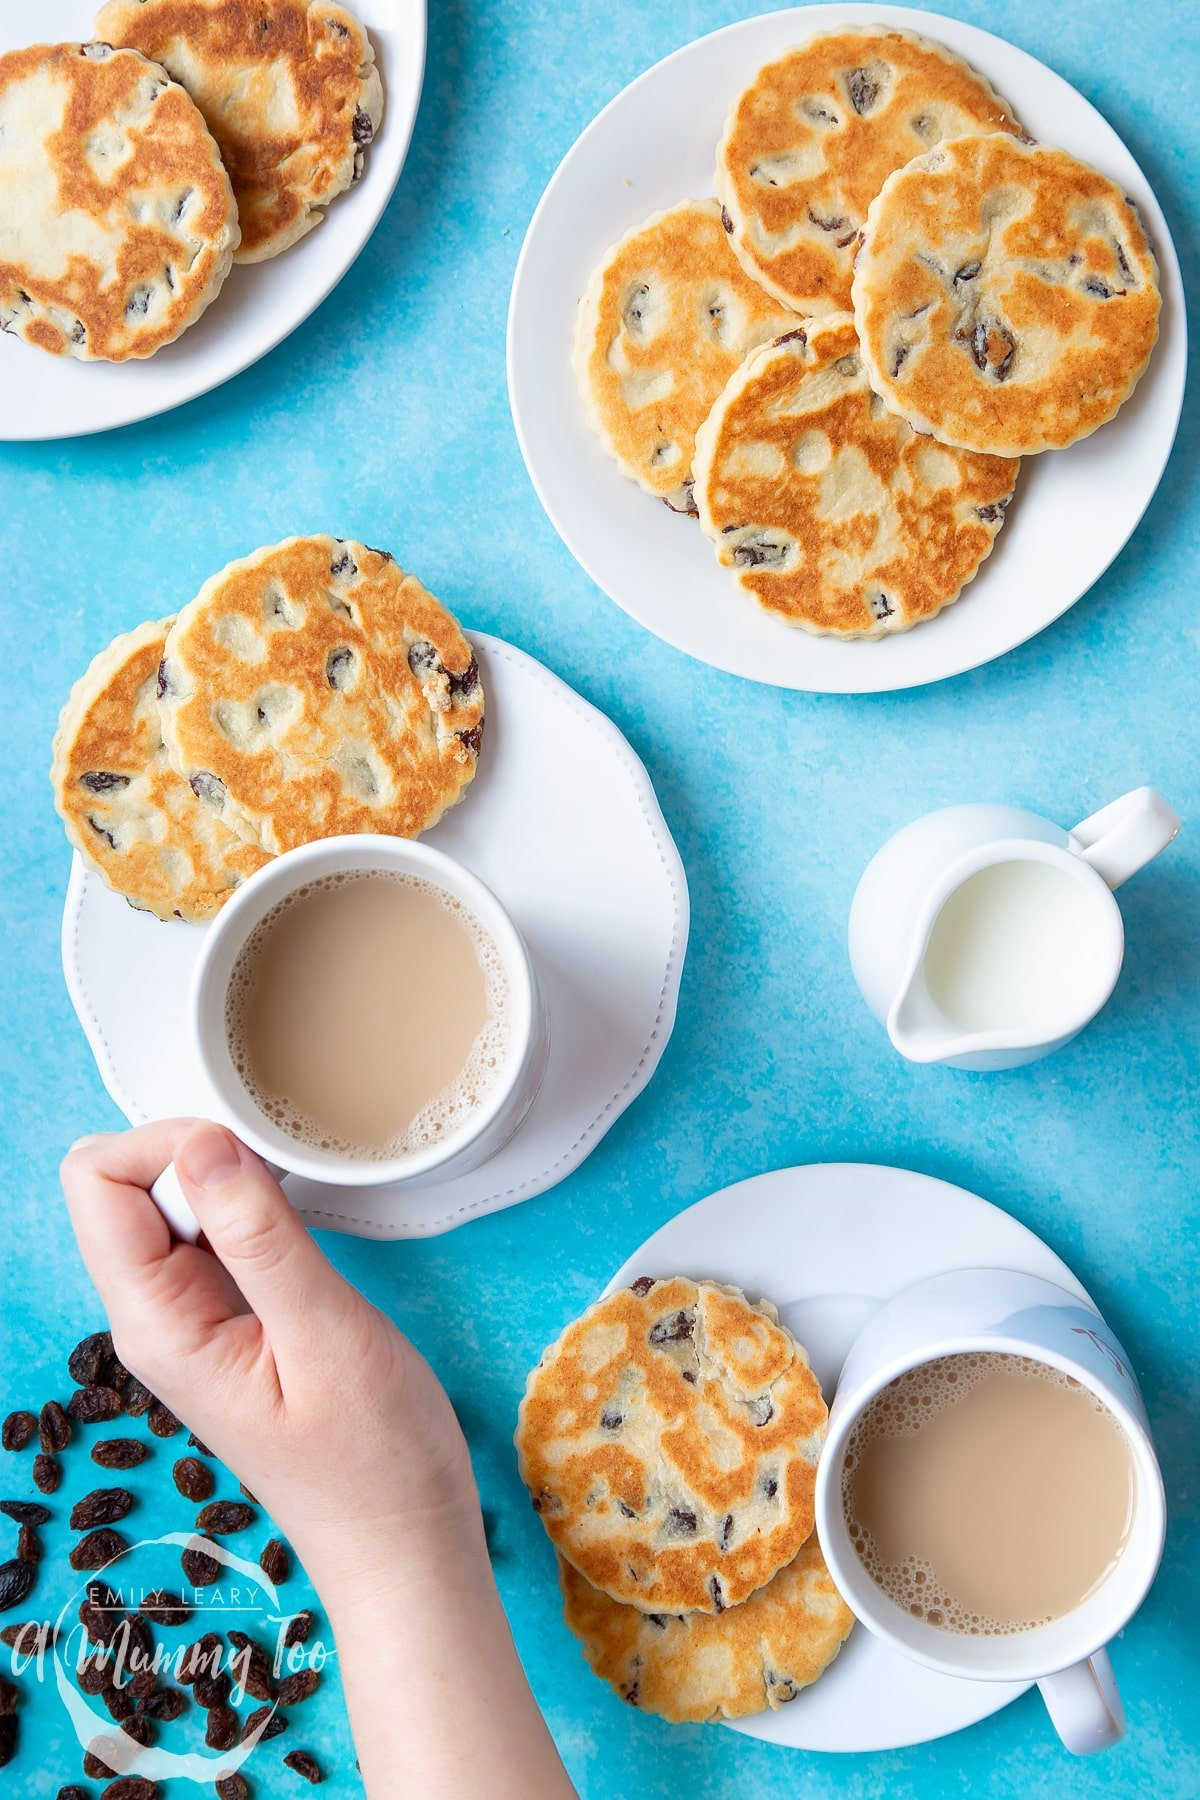 Welsh cakes on a number of white plates with cups of tea. A small jug of milk sits to one side by a scattering of sultanas. A hand reaches in to take a cup of tea.